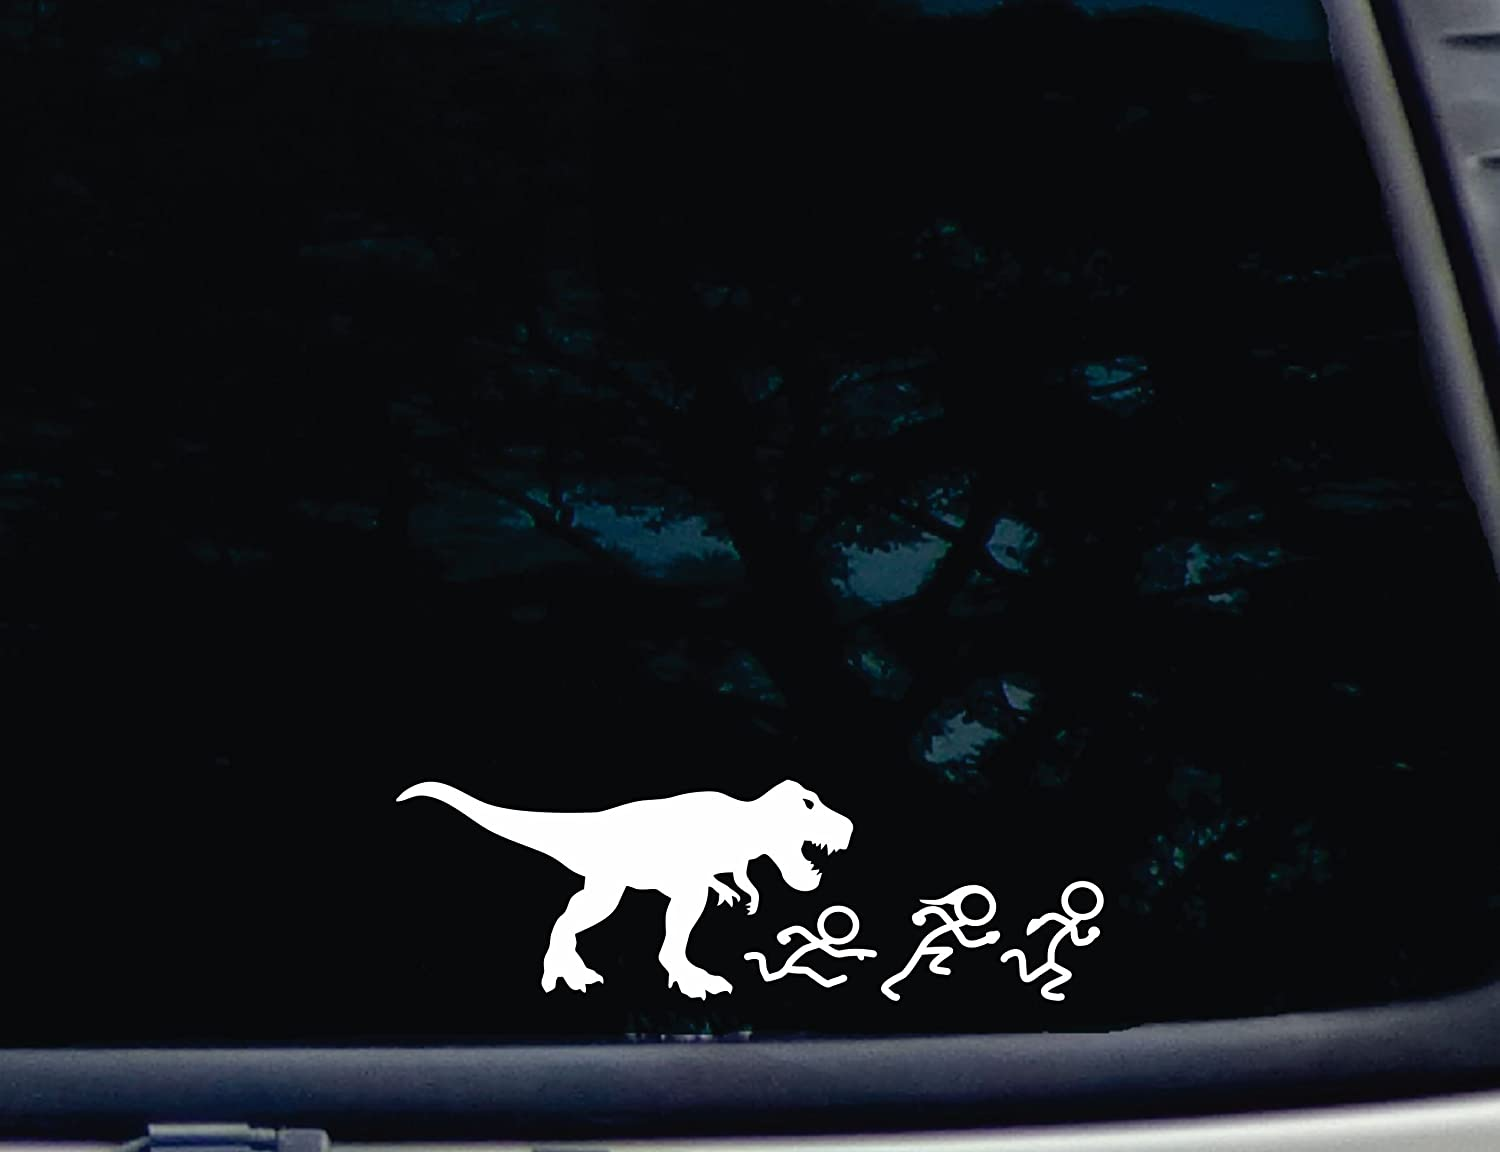 Amazoncom TRex Chasing Stick Figure Family X Die - Vinyl decals for your caramazoncom your stick family was delicious trex vinyl decal